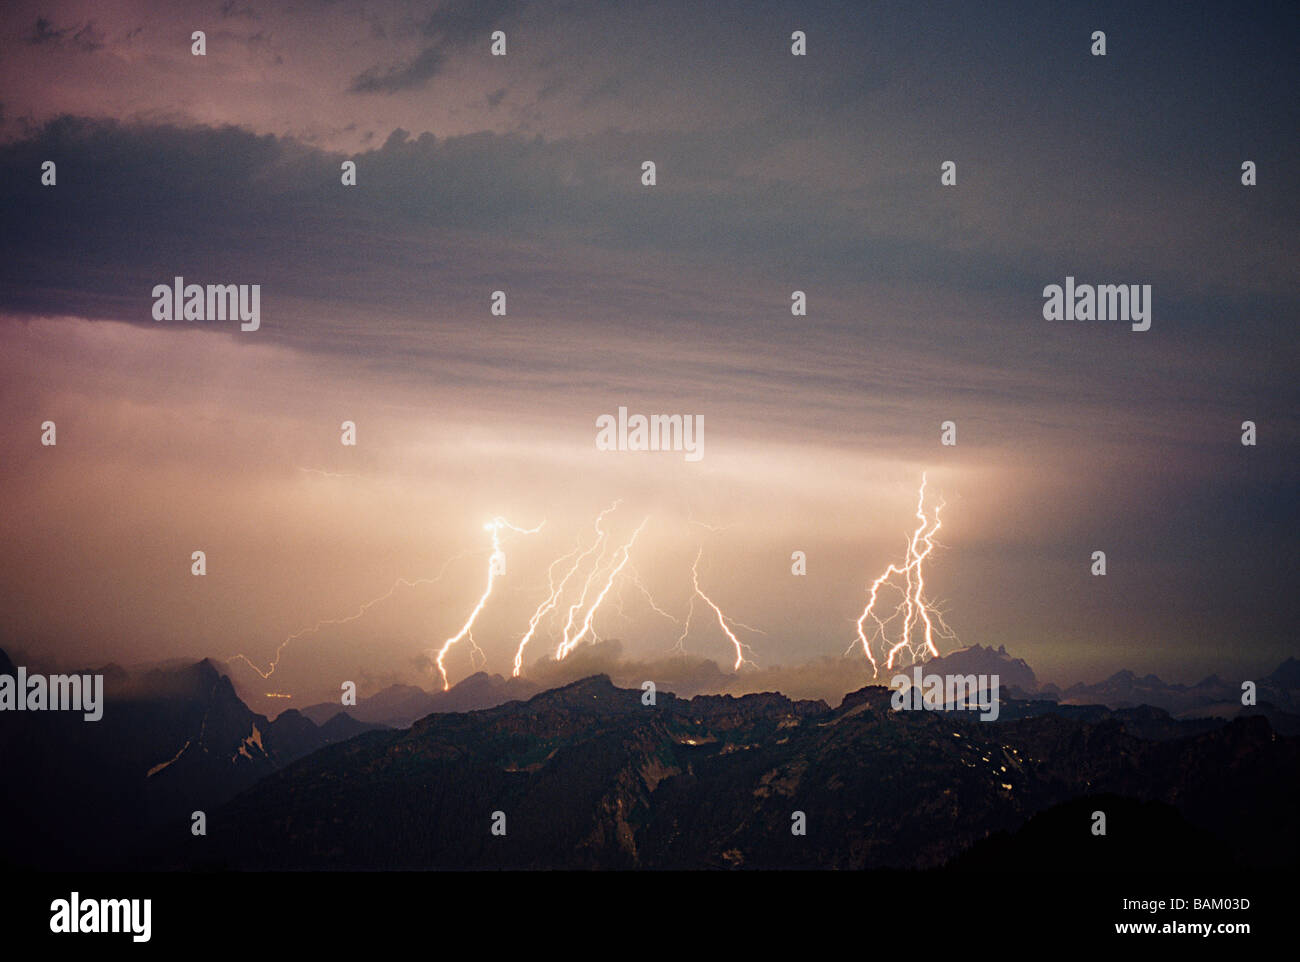 Lightning storm over cascade mountains - Stock Image